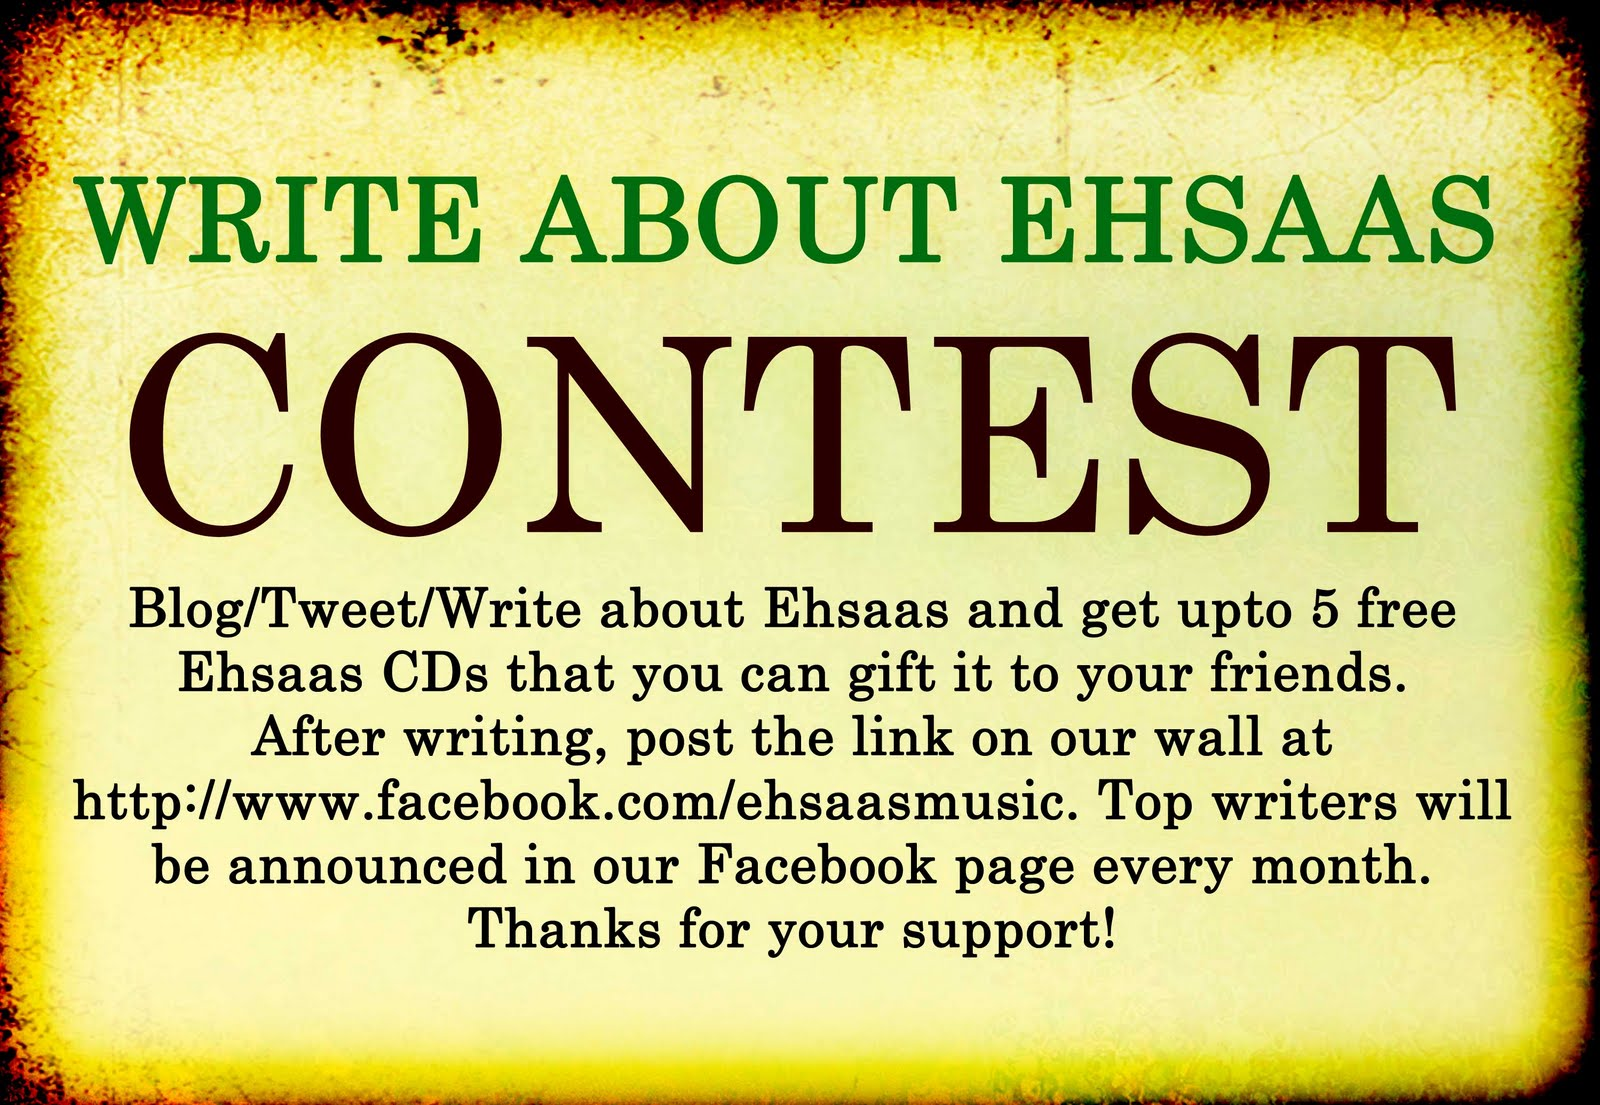 Ehsaas - Contemporary Indian Gospel Band